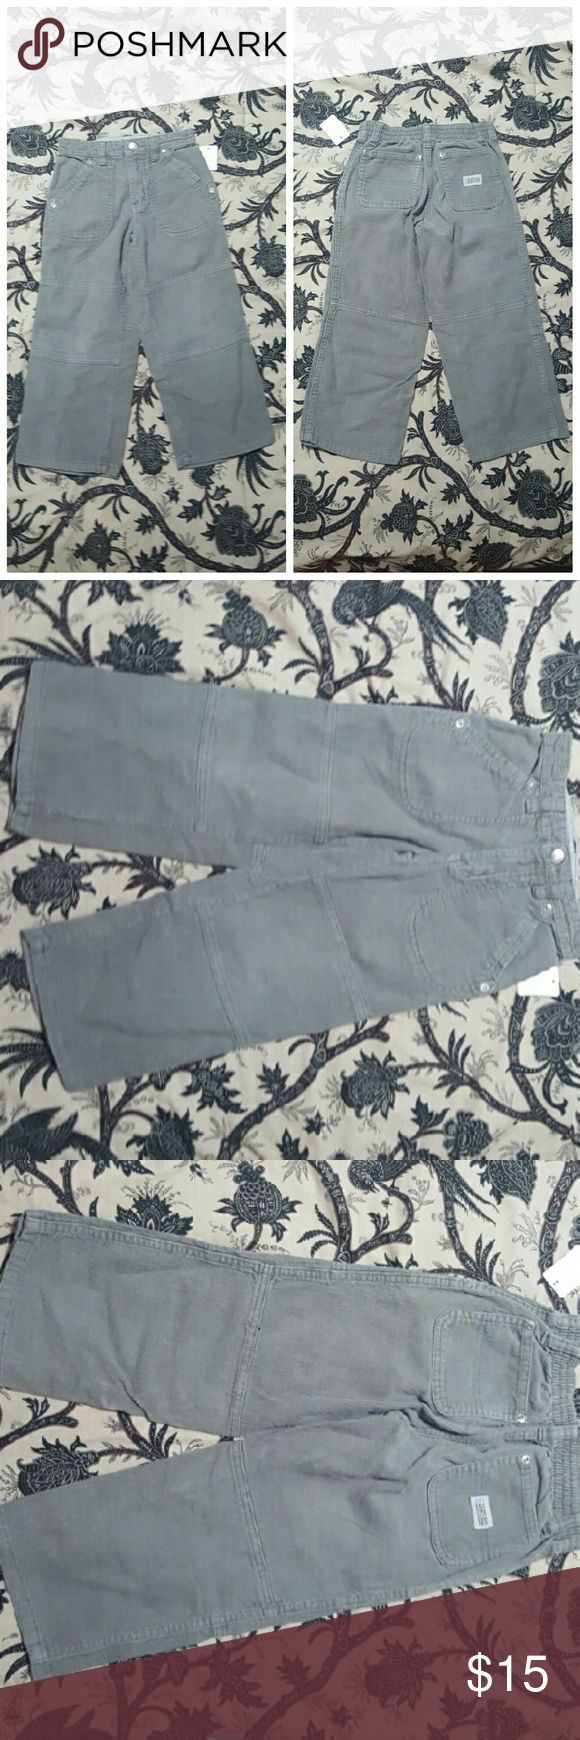 *NEW* Old Navy Gray Cord Pants Boys Sz 4T *NEW* Old Navy Gray Cord Pants Boys Sz 4T Old Navy Bottoms